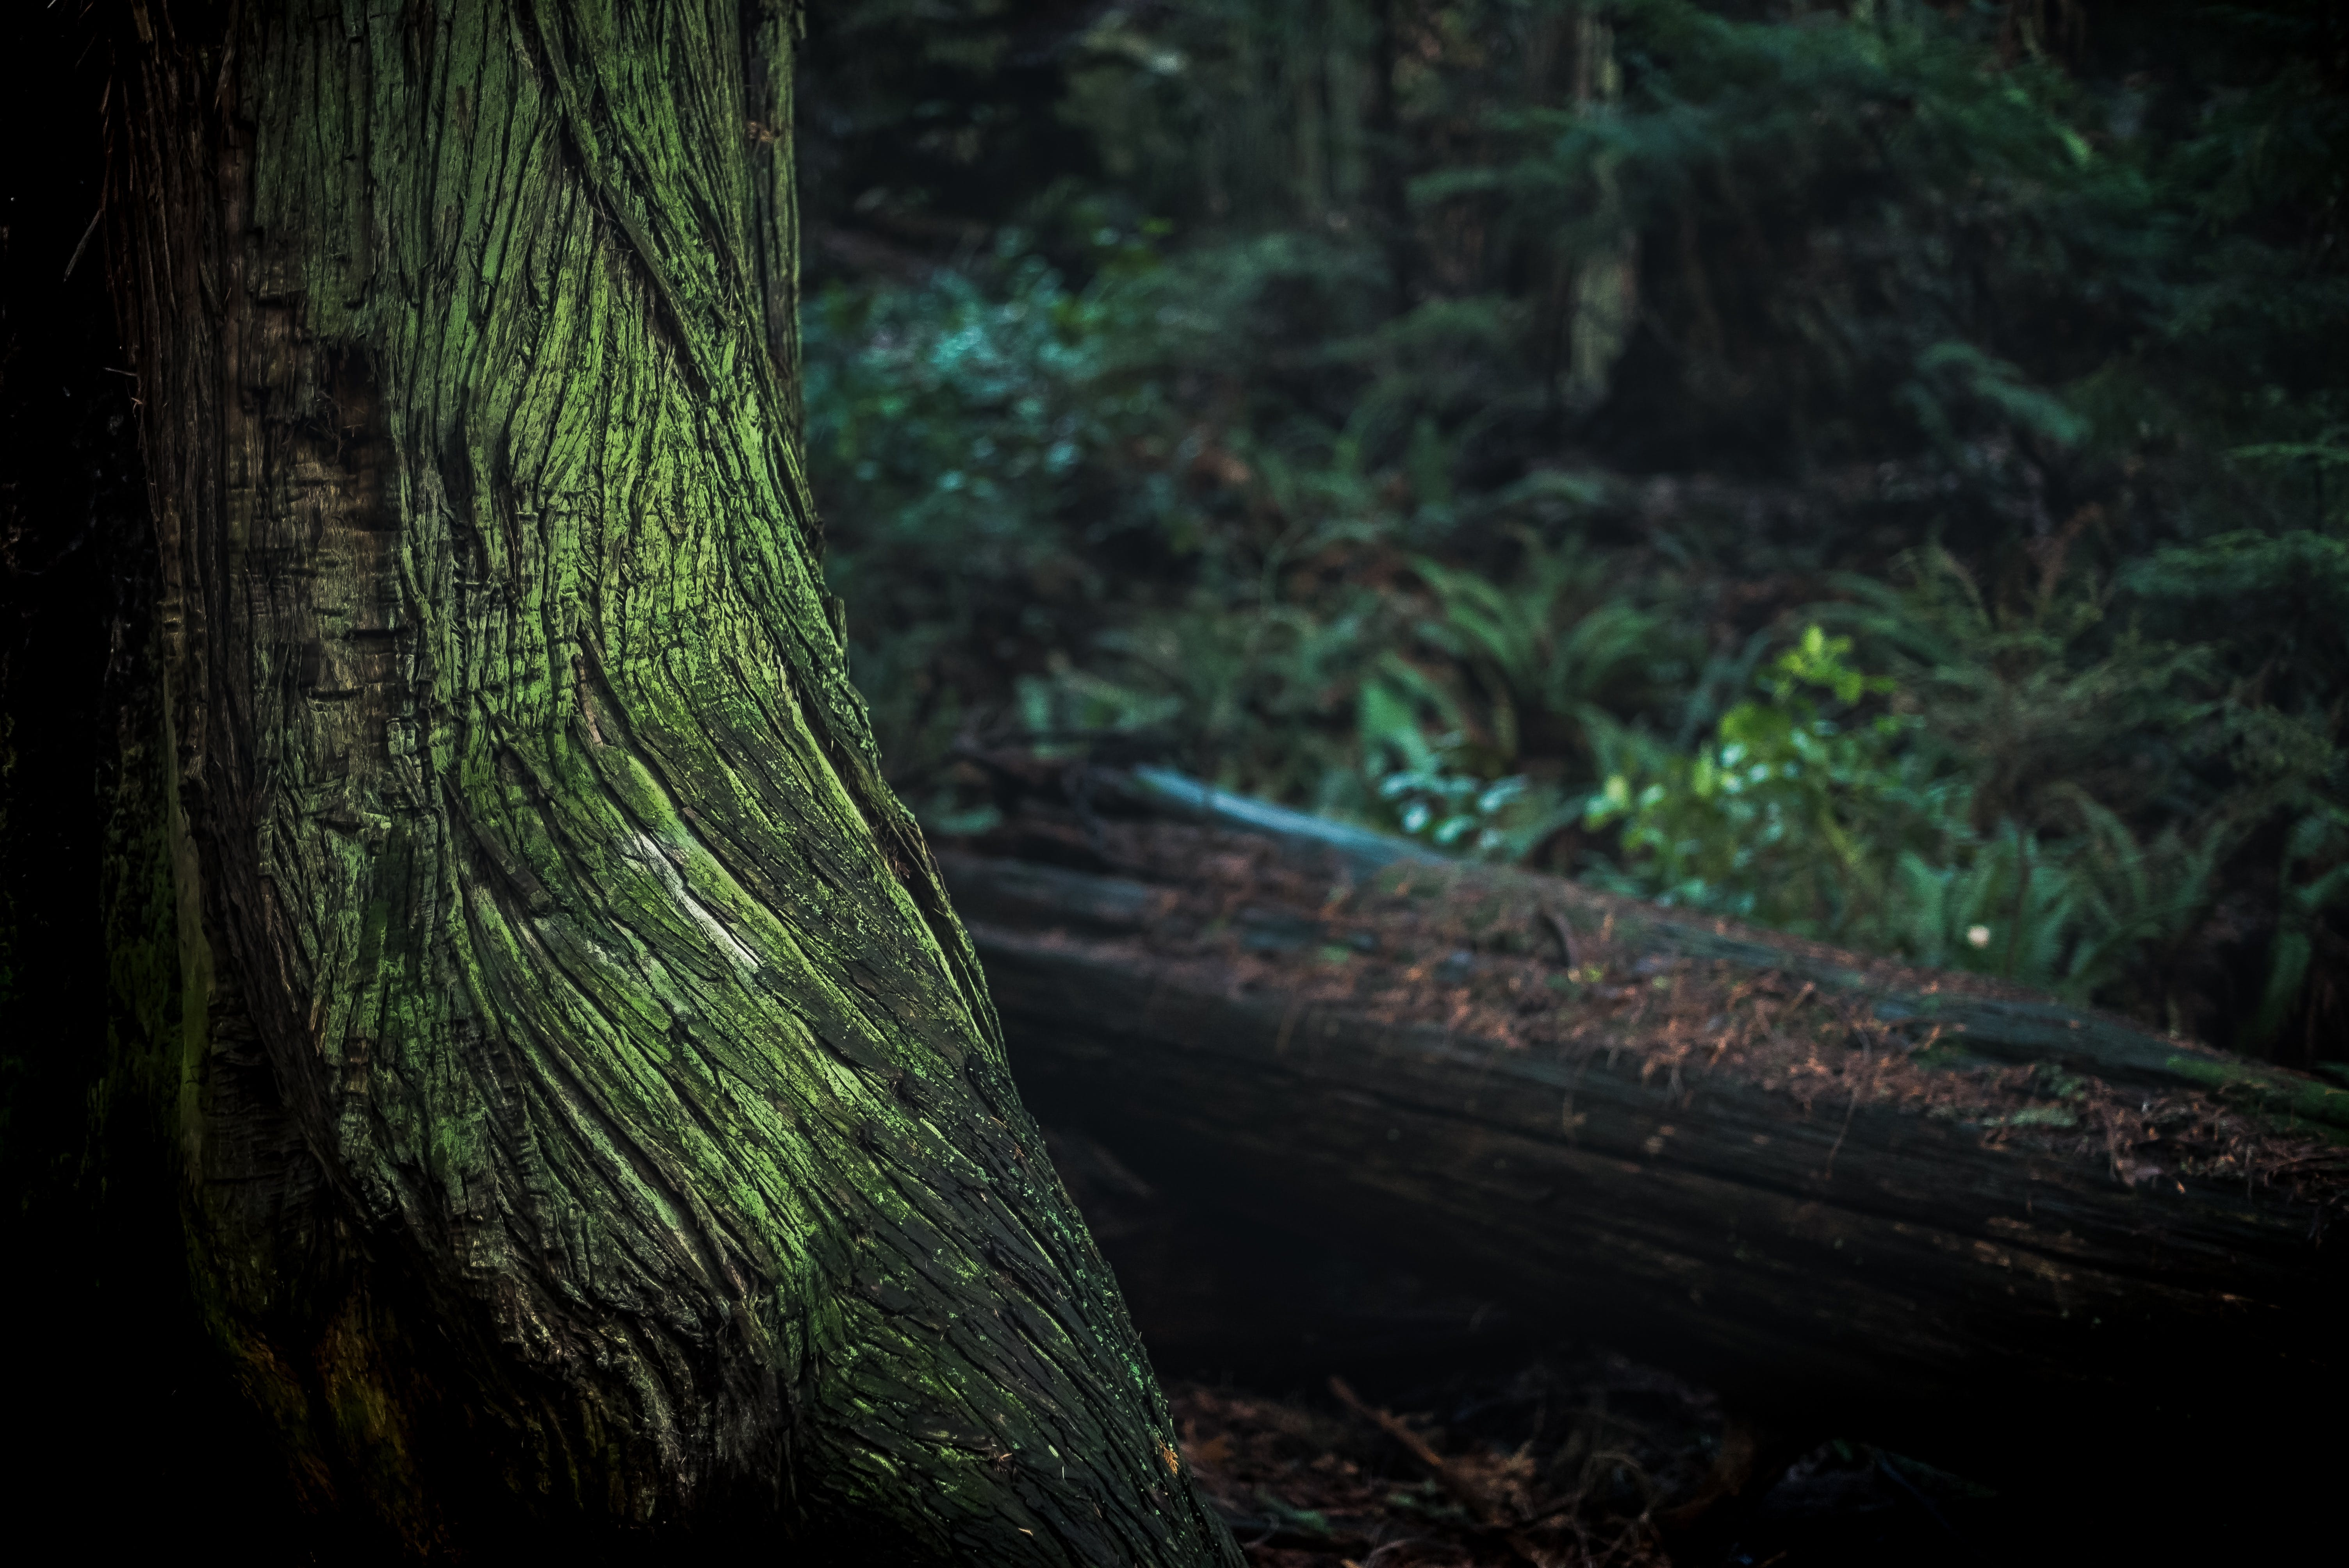 Green and Black Tree Trunk